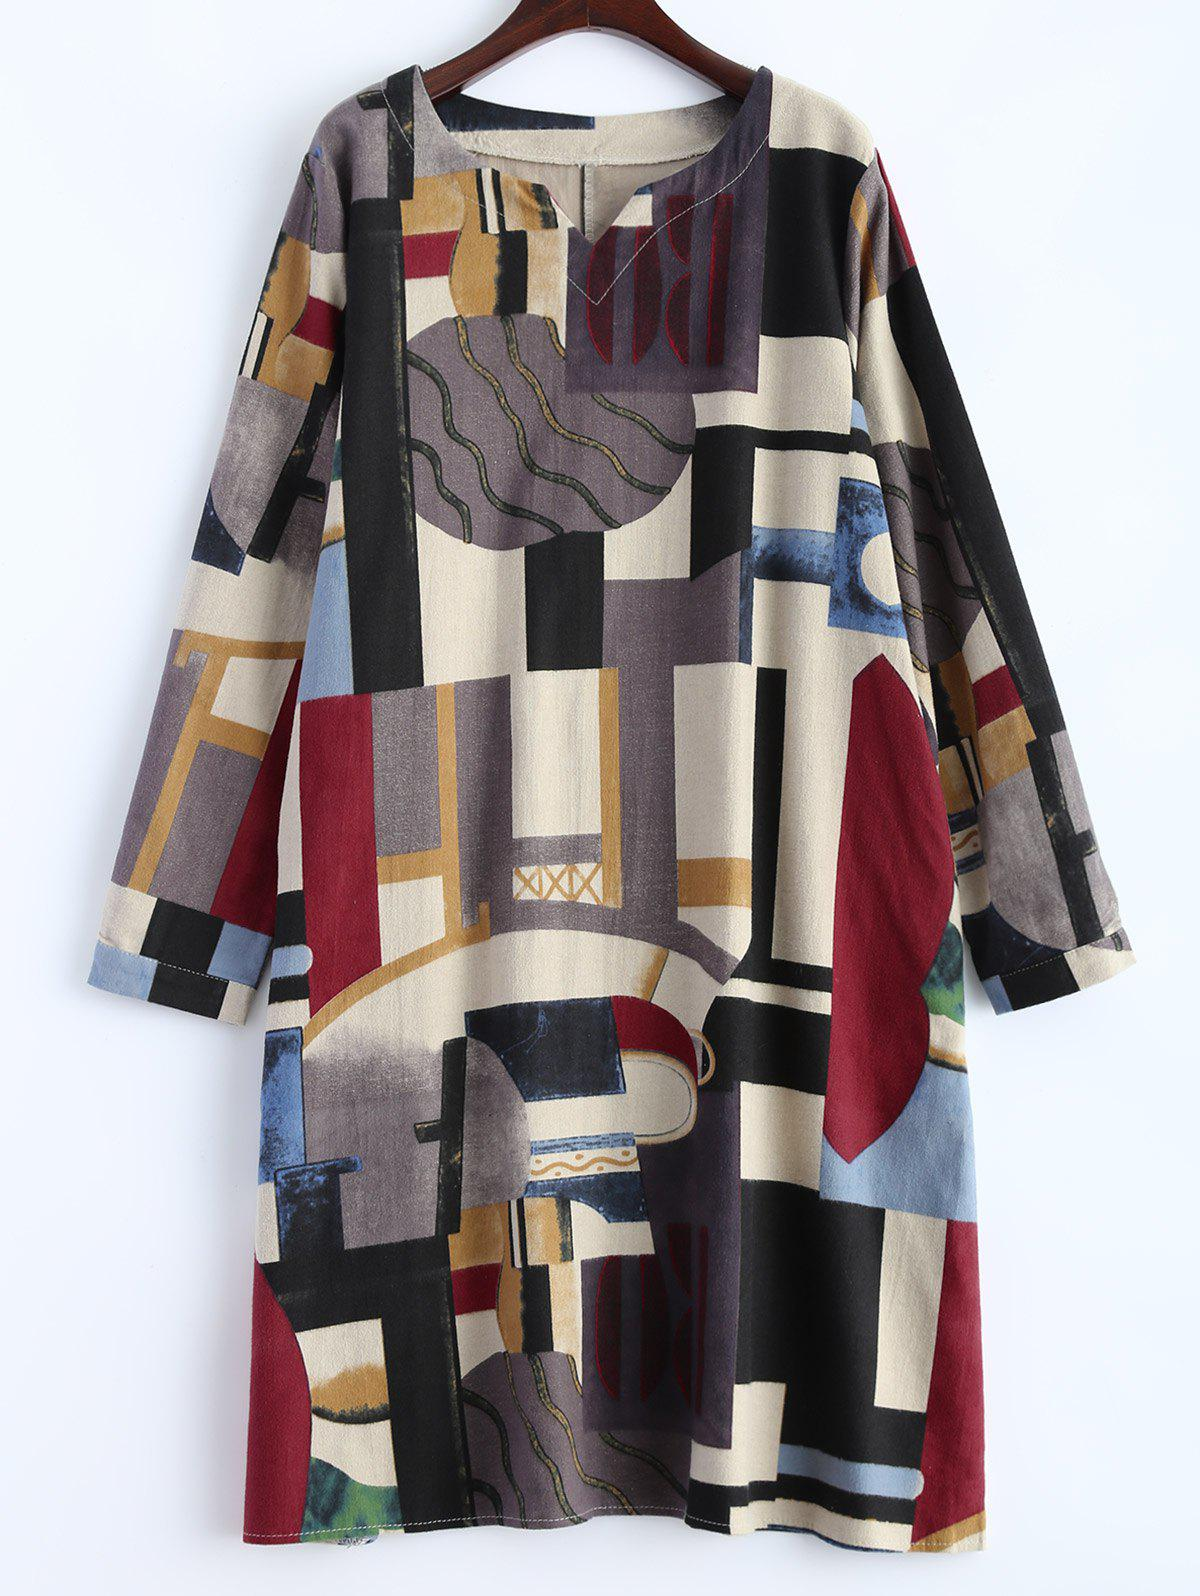 Geometry Patchwork Print Casual Dress - OFF WHITE M